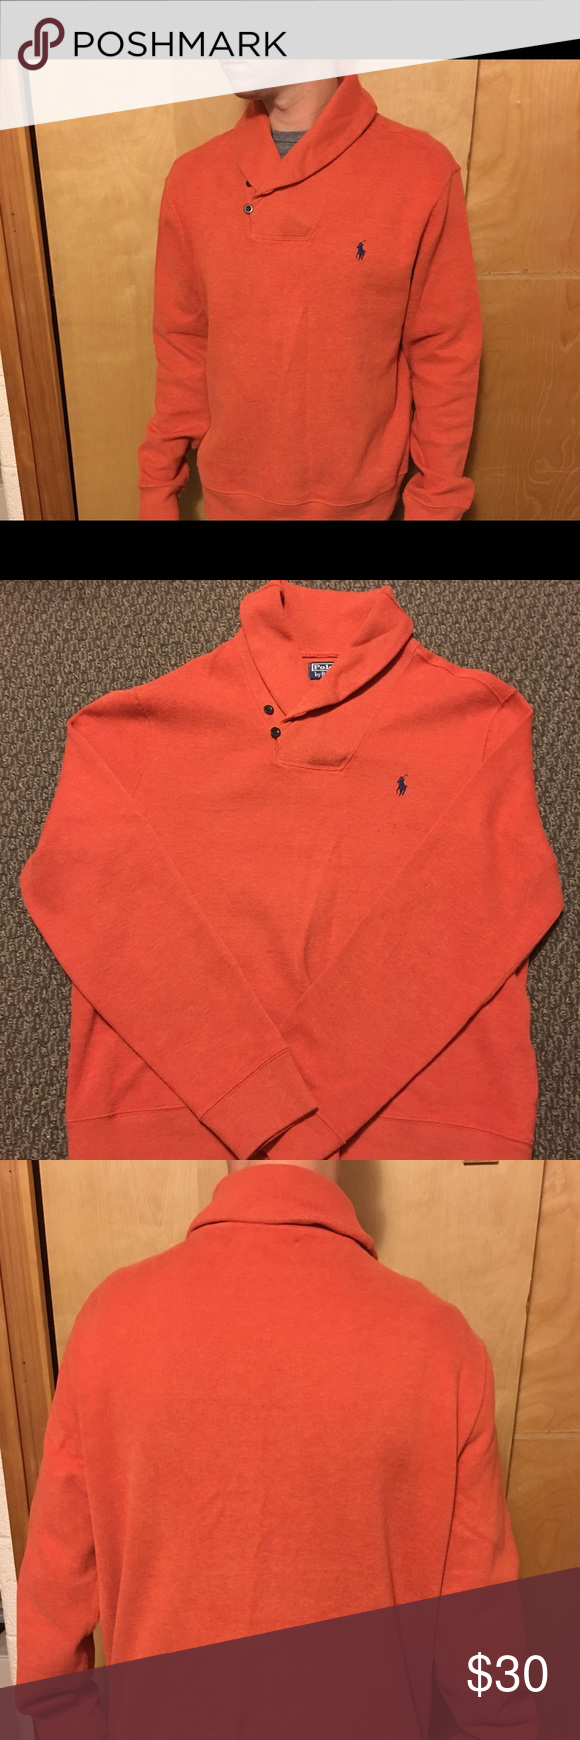 Ralph Lauren polo sweater. Fits size large. This is like brand new. No flaws and very well could have never been worn at all. These are not cheap as I'm sure you know New from RL. Stay classy San Diego with this delightful treat from polos classic sweater collection. Xl but fits Like a large. Polo by Ralph Lauren Shirts Sweatshirts & Hoodies